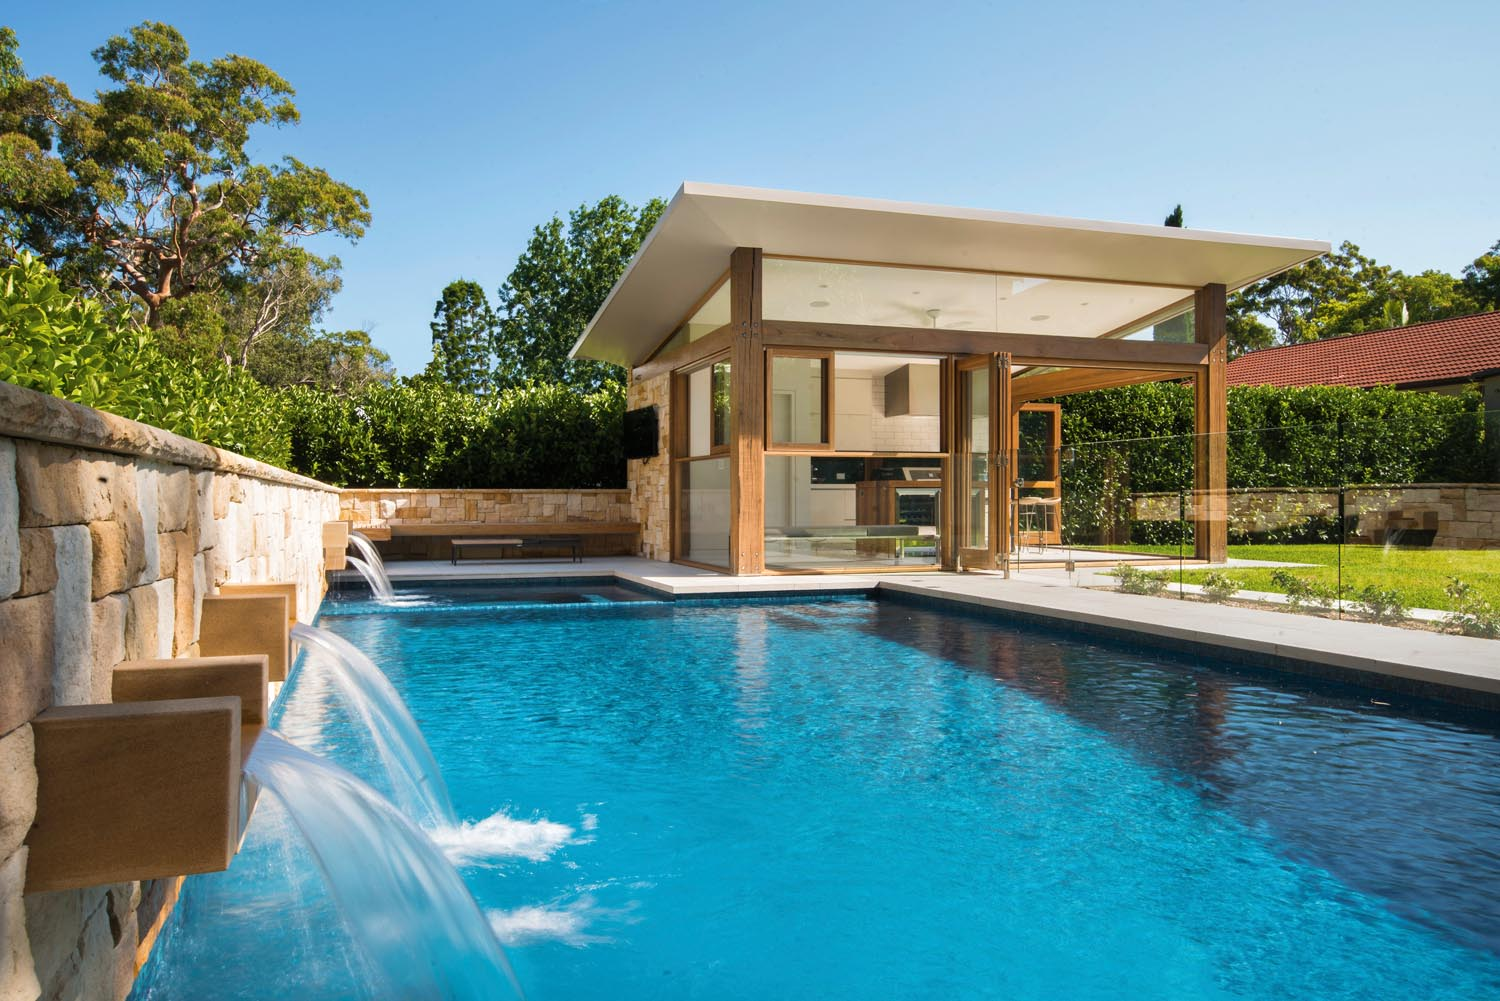 6 of our favourite Sydney landscape designers: A Total Concept